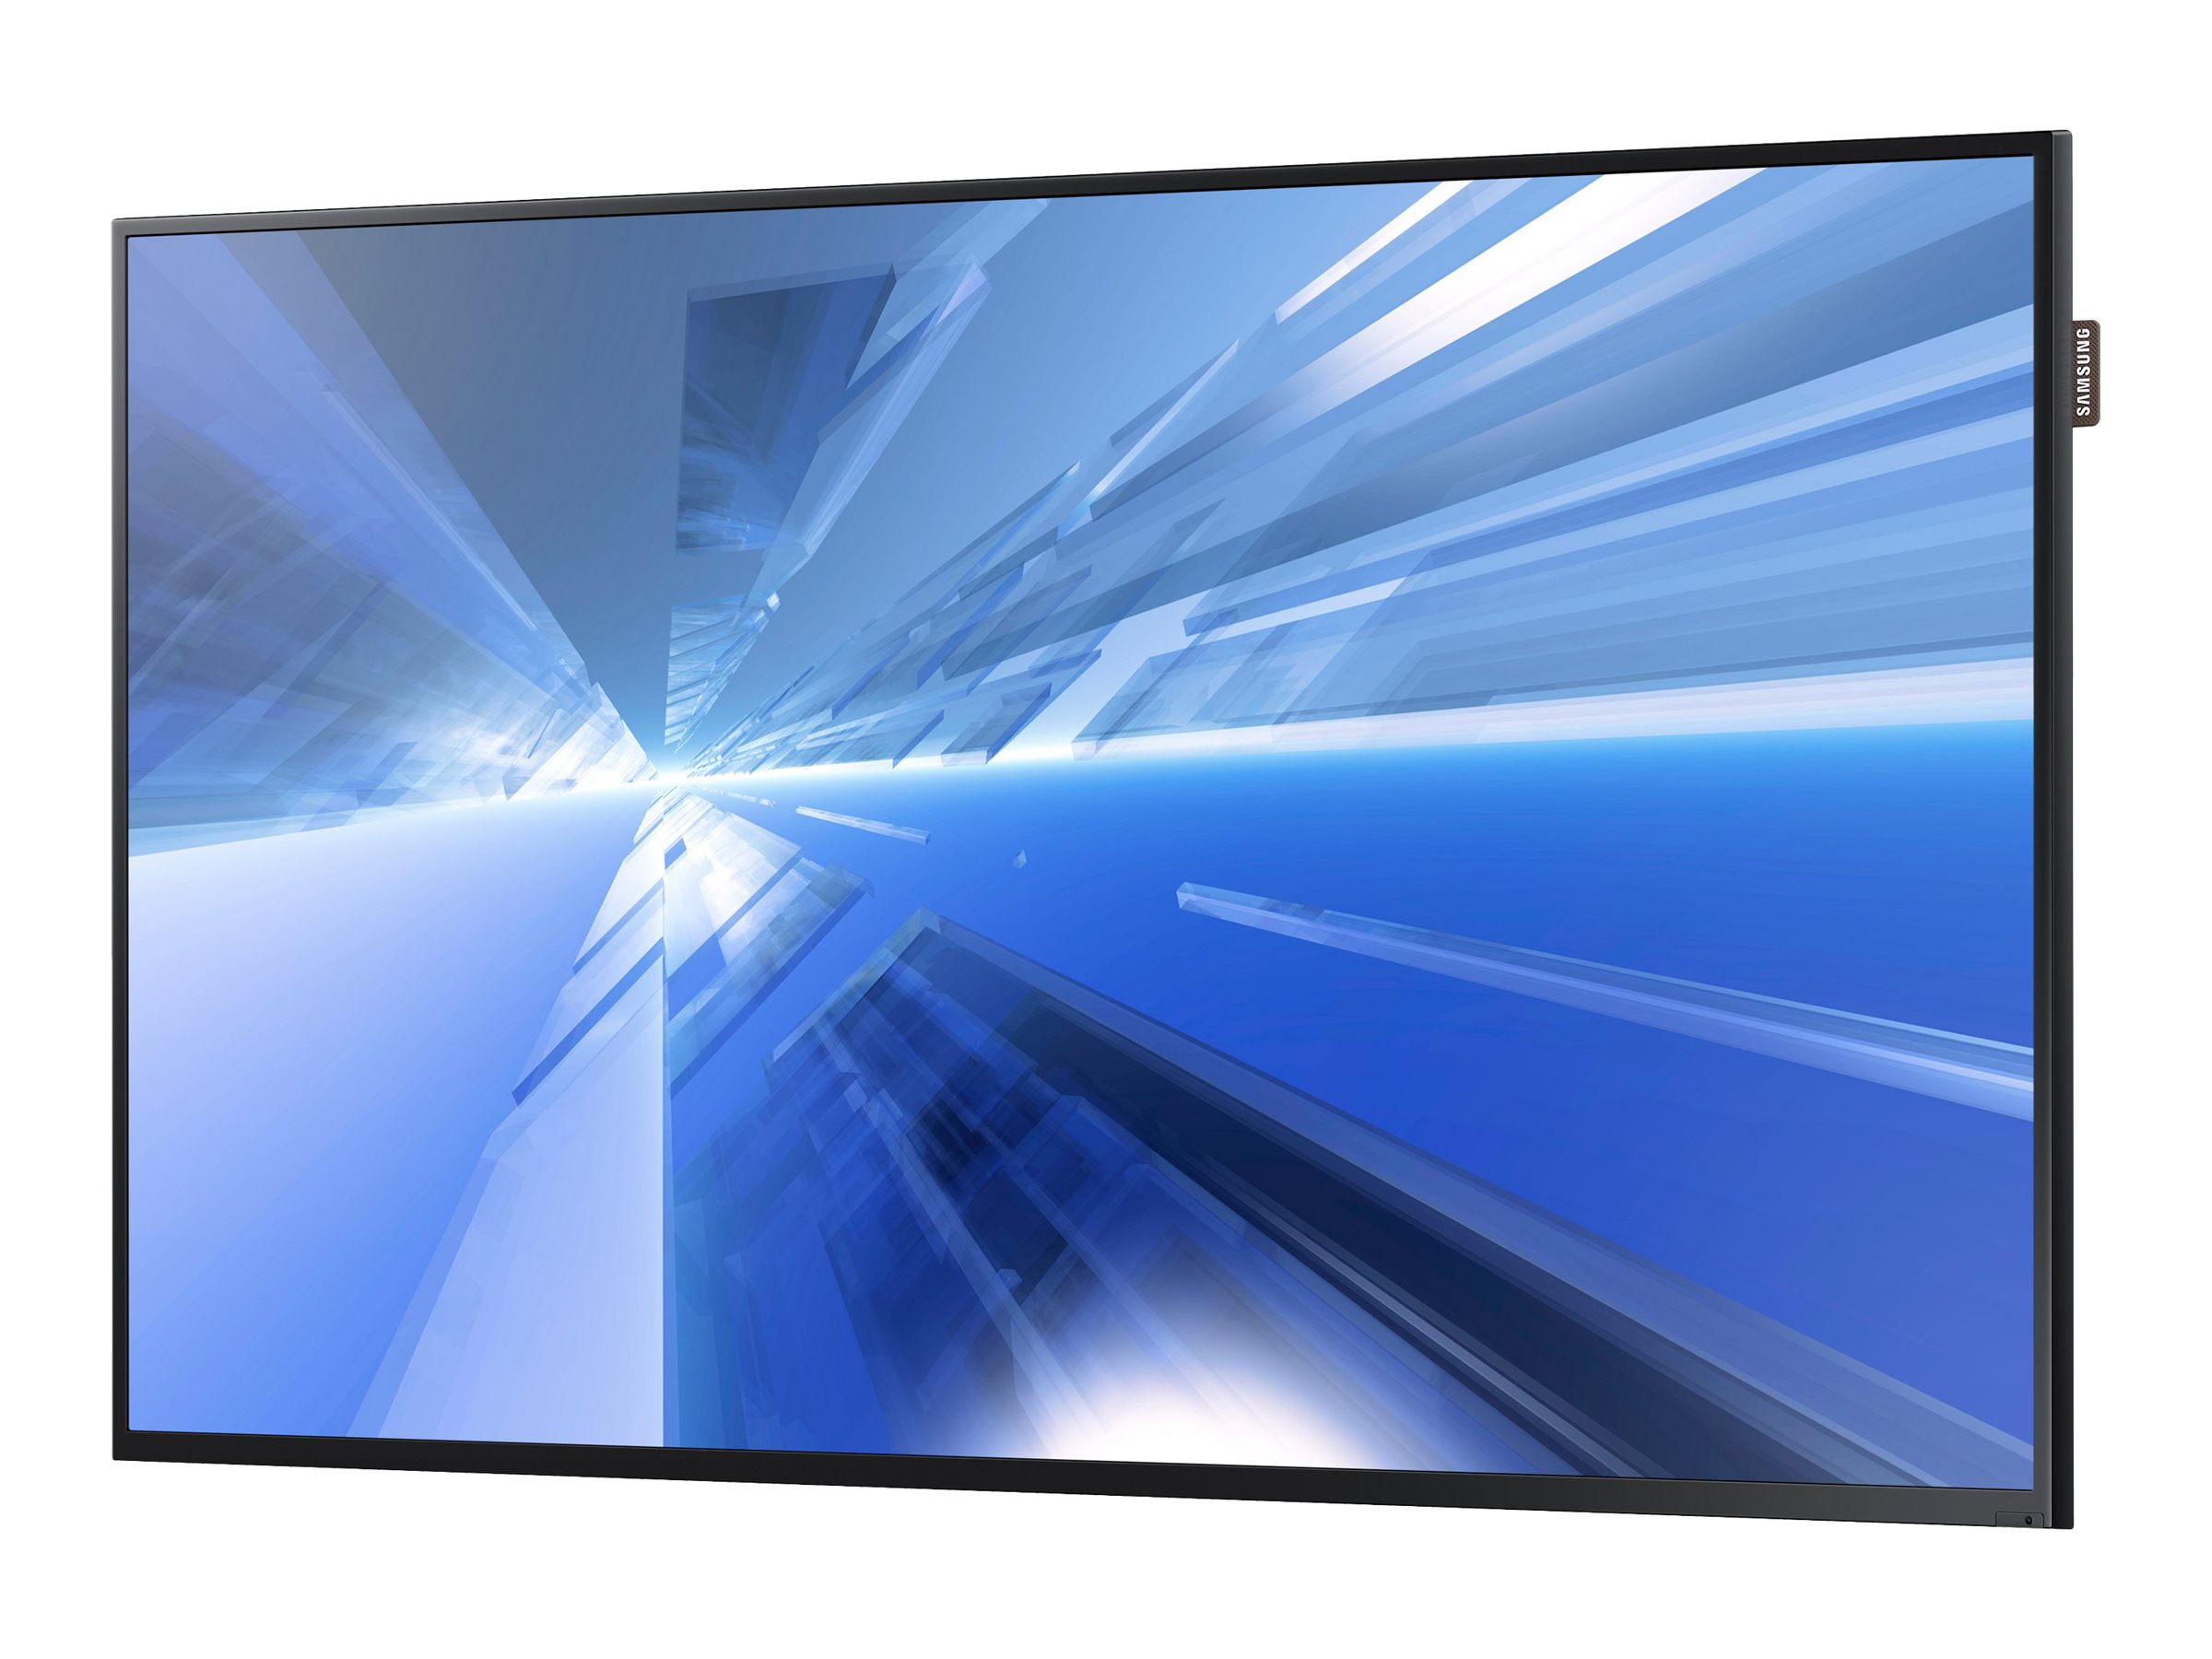 Samsung 40 DC-E Full HD LED-LCD Commercial Display, Black, DC40E